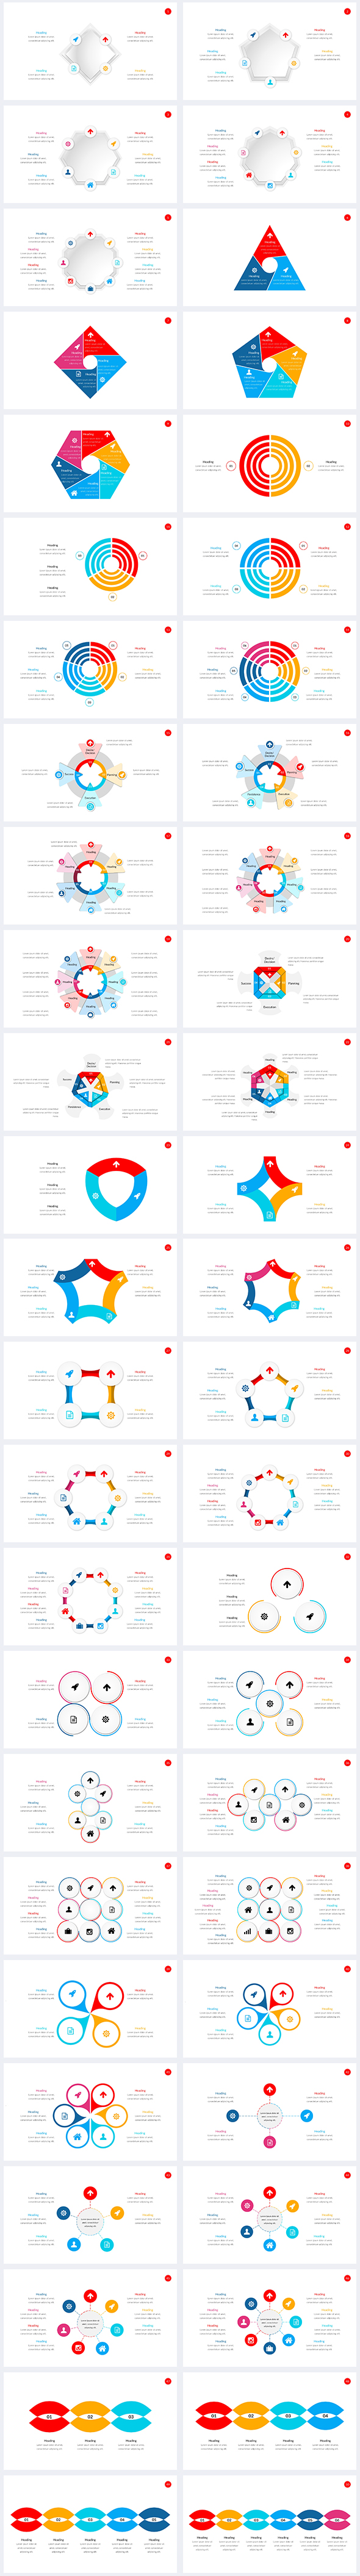 Geometry-Infographic-Power-Point-Template